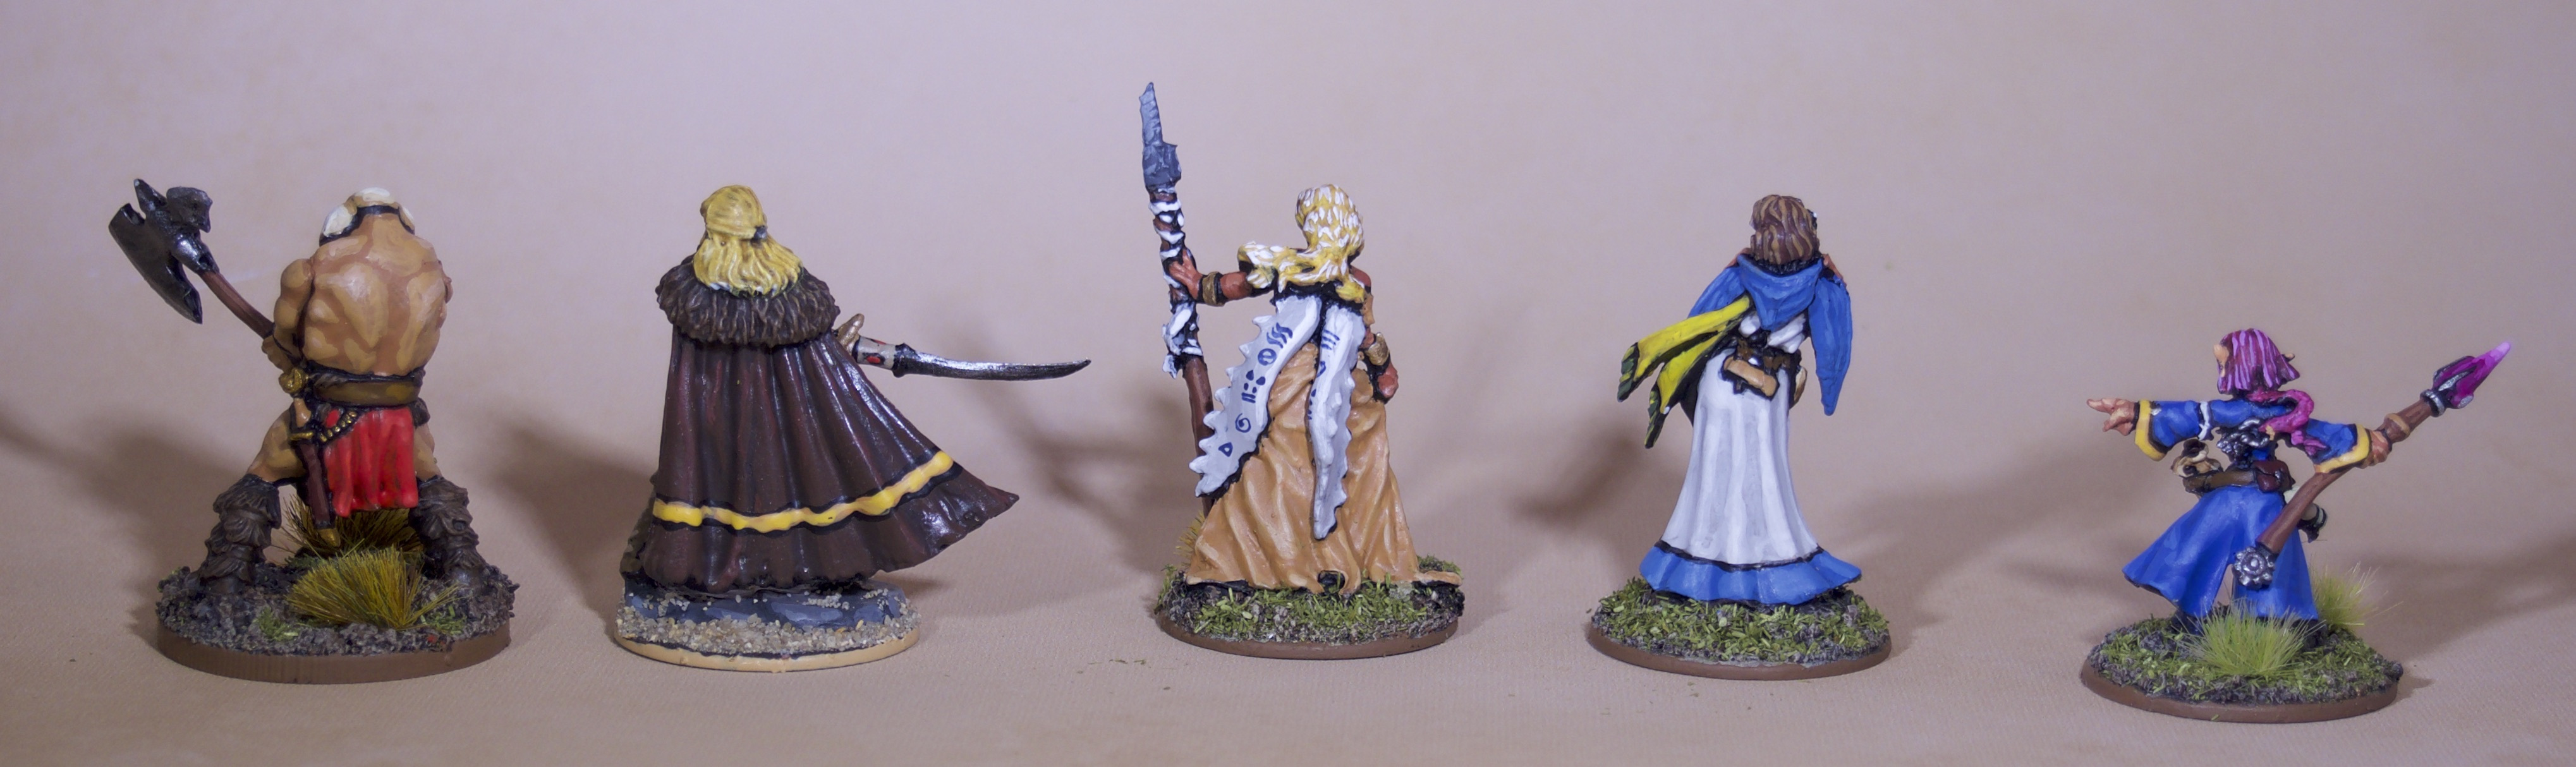 Painted Roleplaying Miniatures - Adventuring Party Rear View